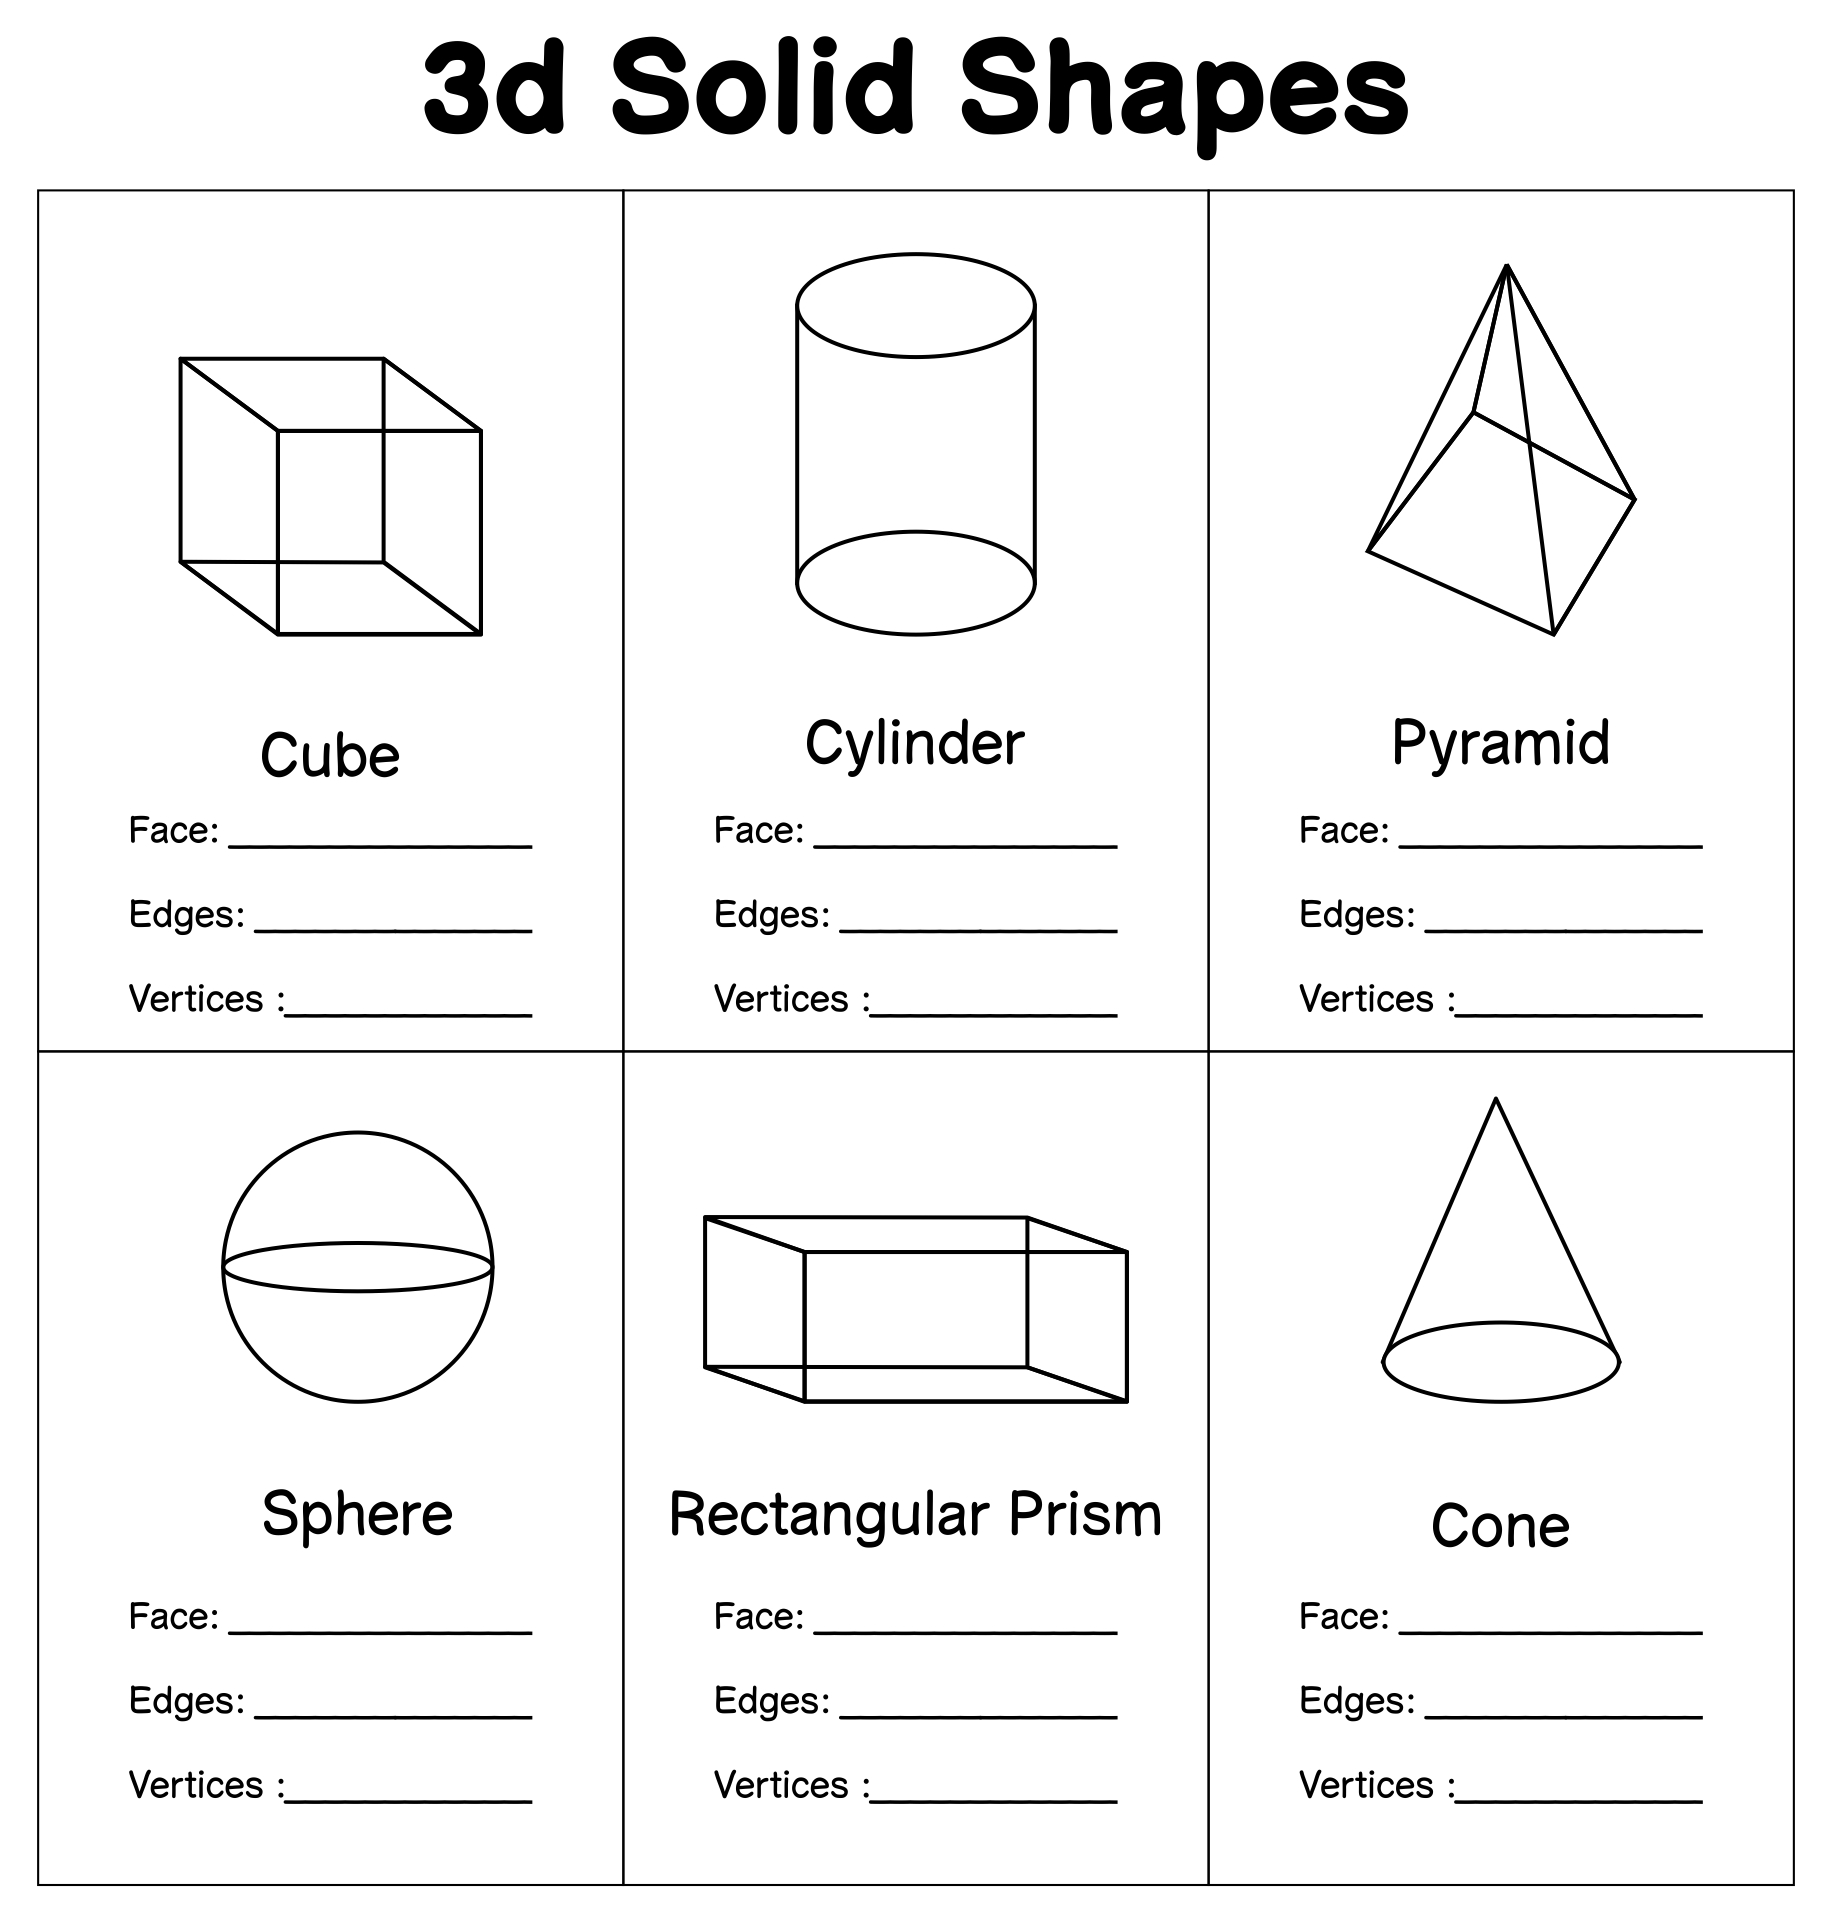 D Solid Figures Shapes on make math fun with printable worksheets making